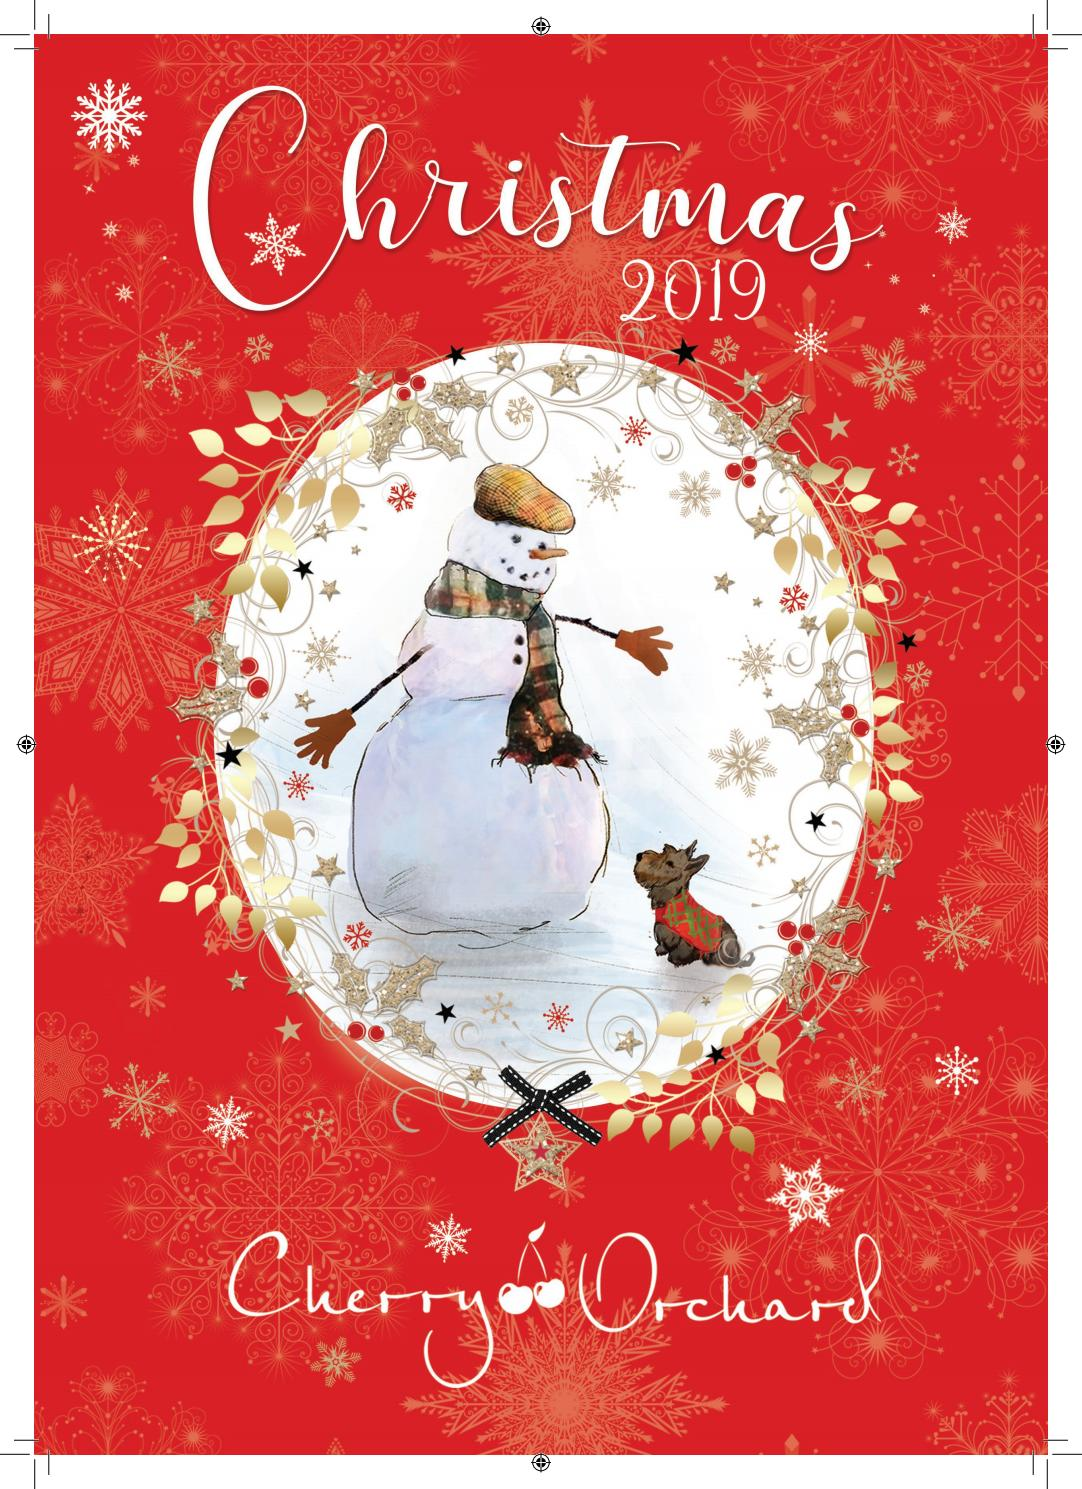 Cherry Orchard Christmas Greeting Card Designs 2019 By